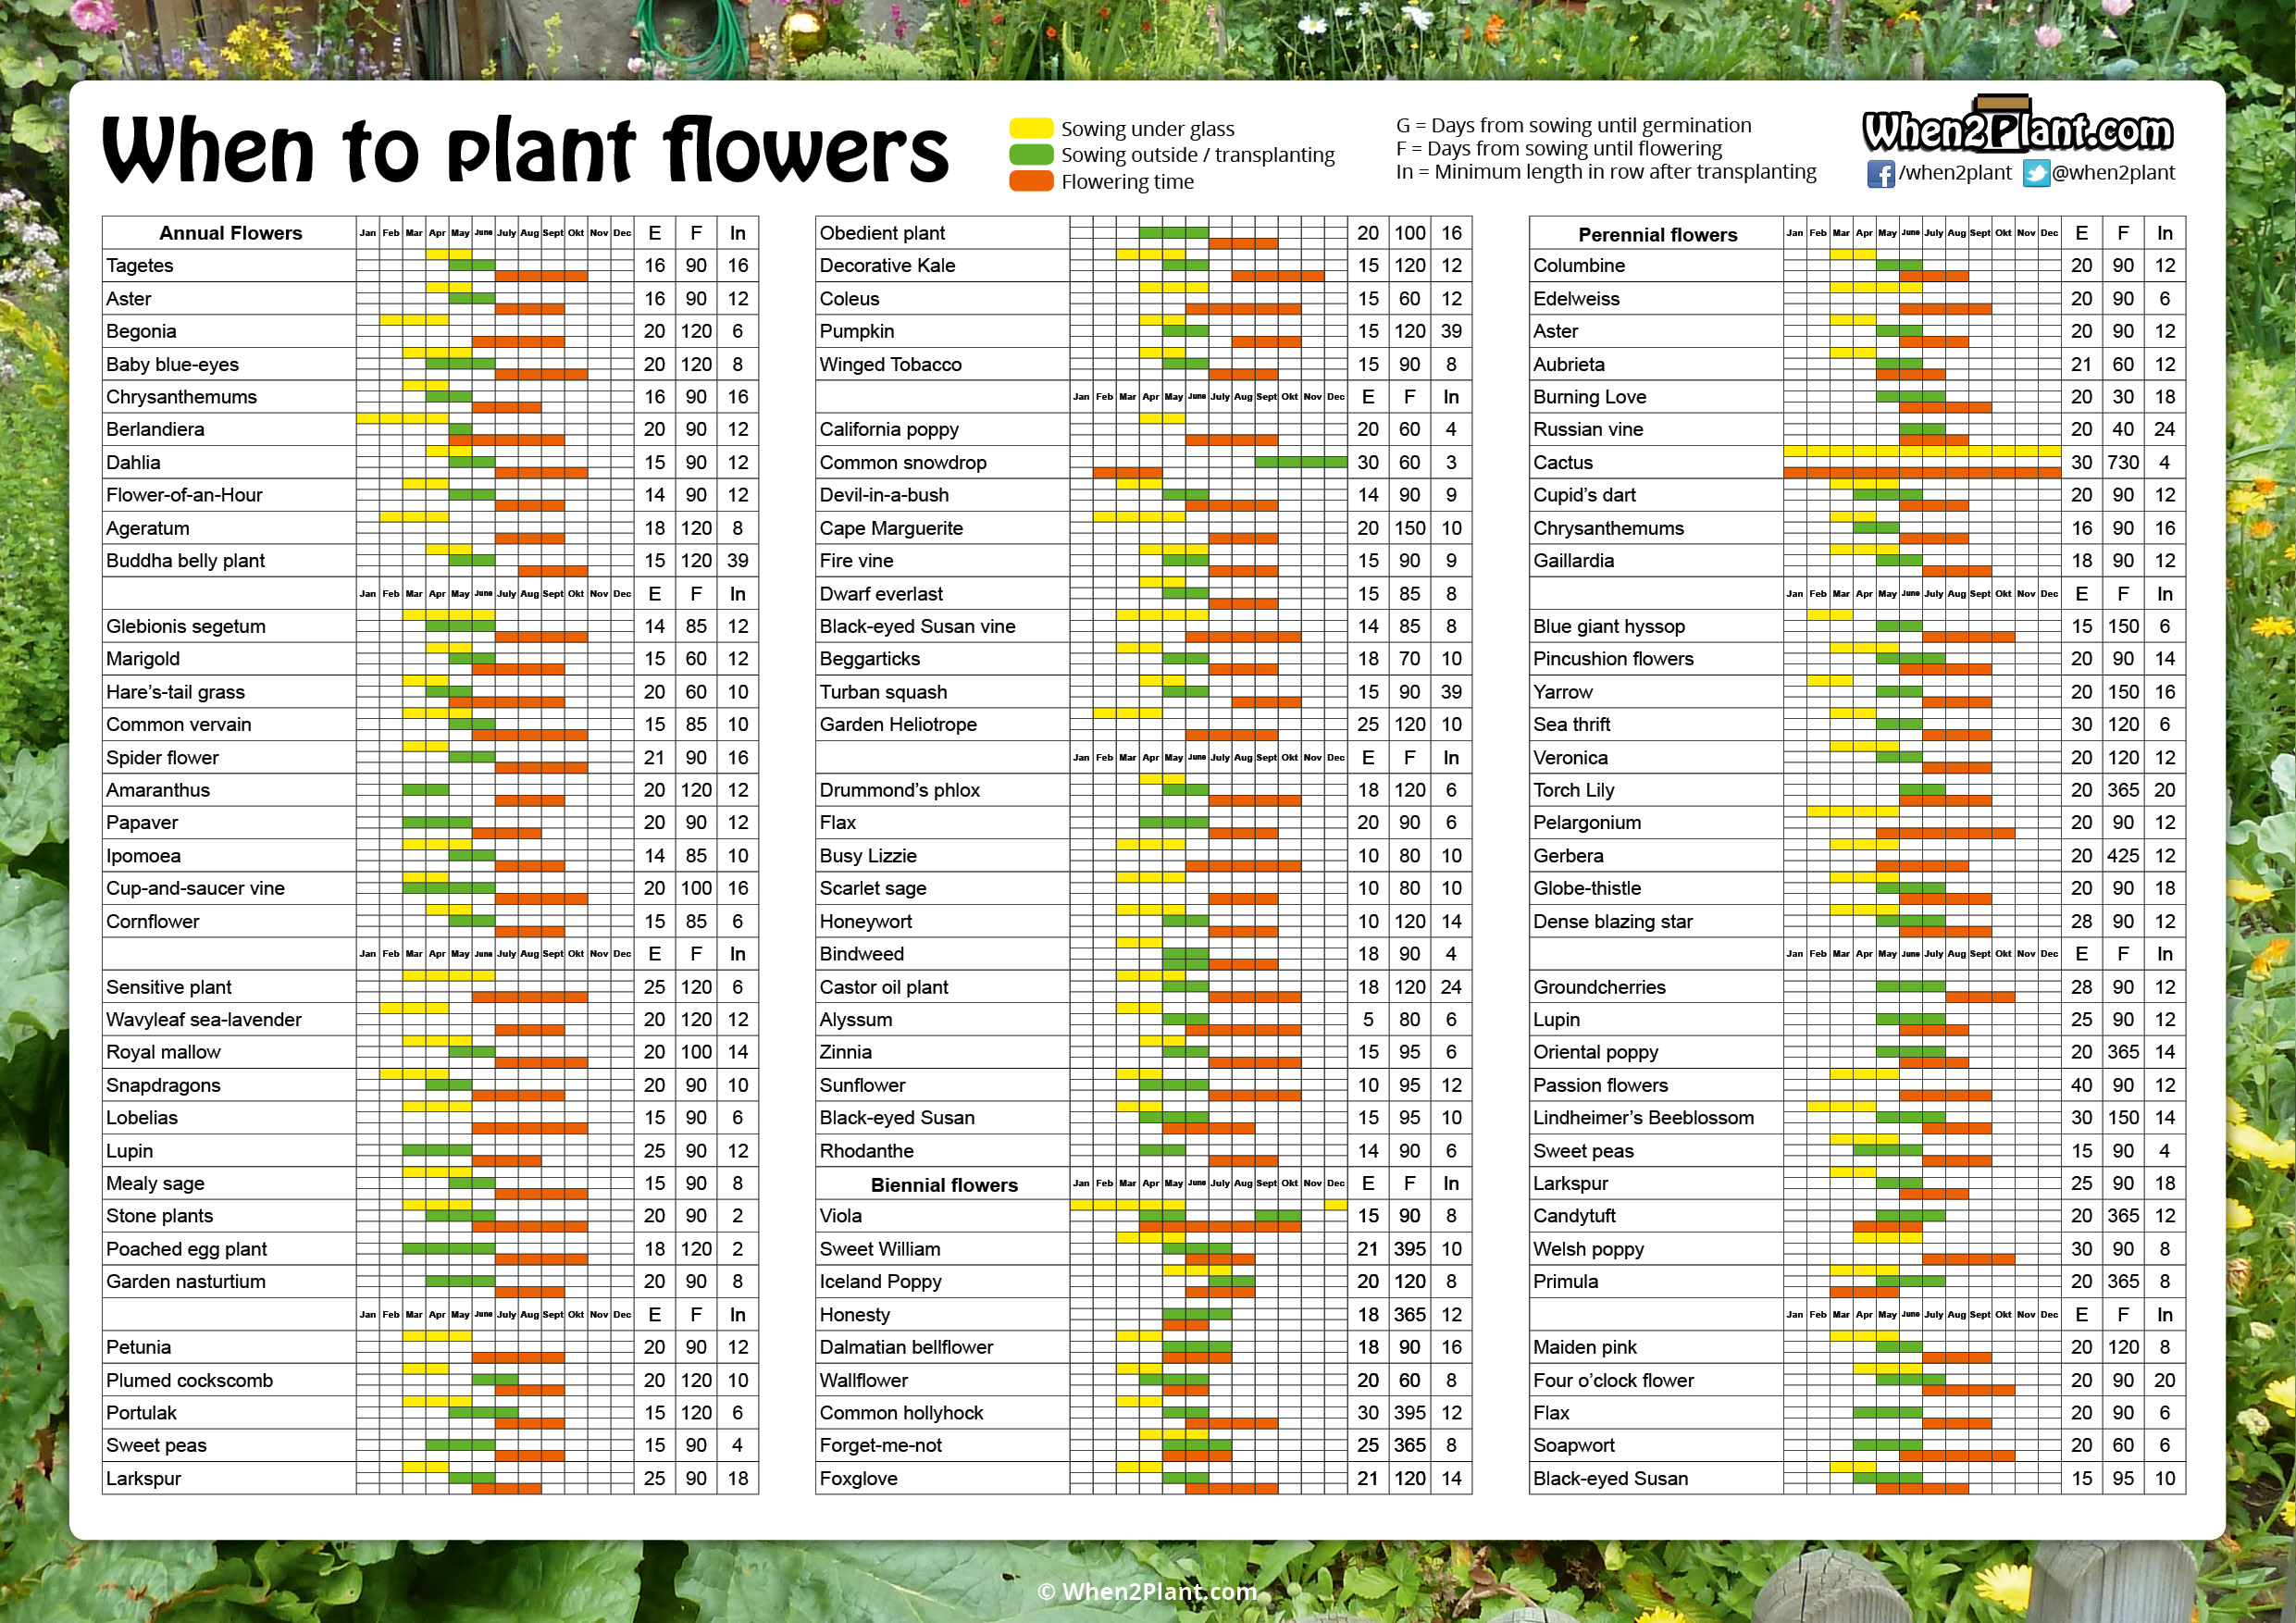 Herbs Chart When To Plant Flowers When2plant Com